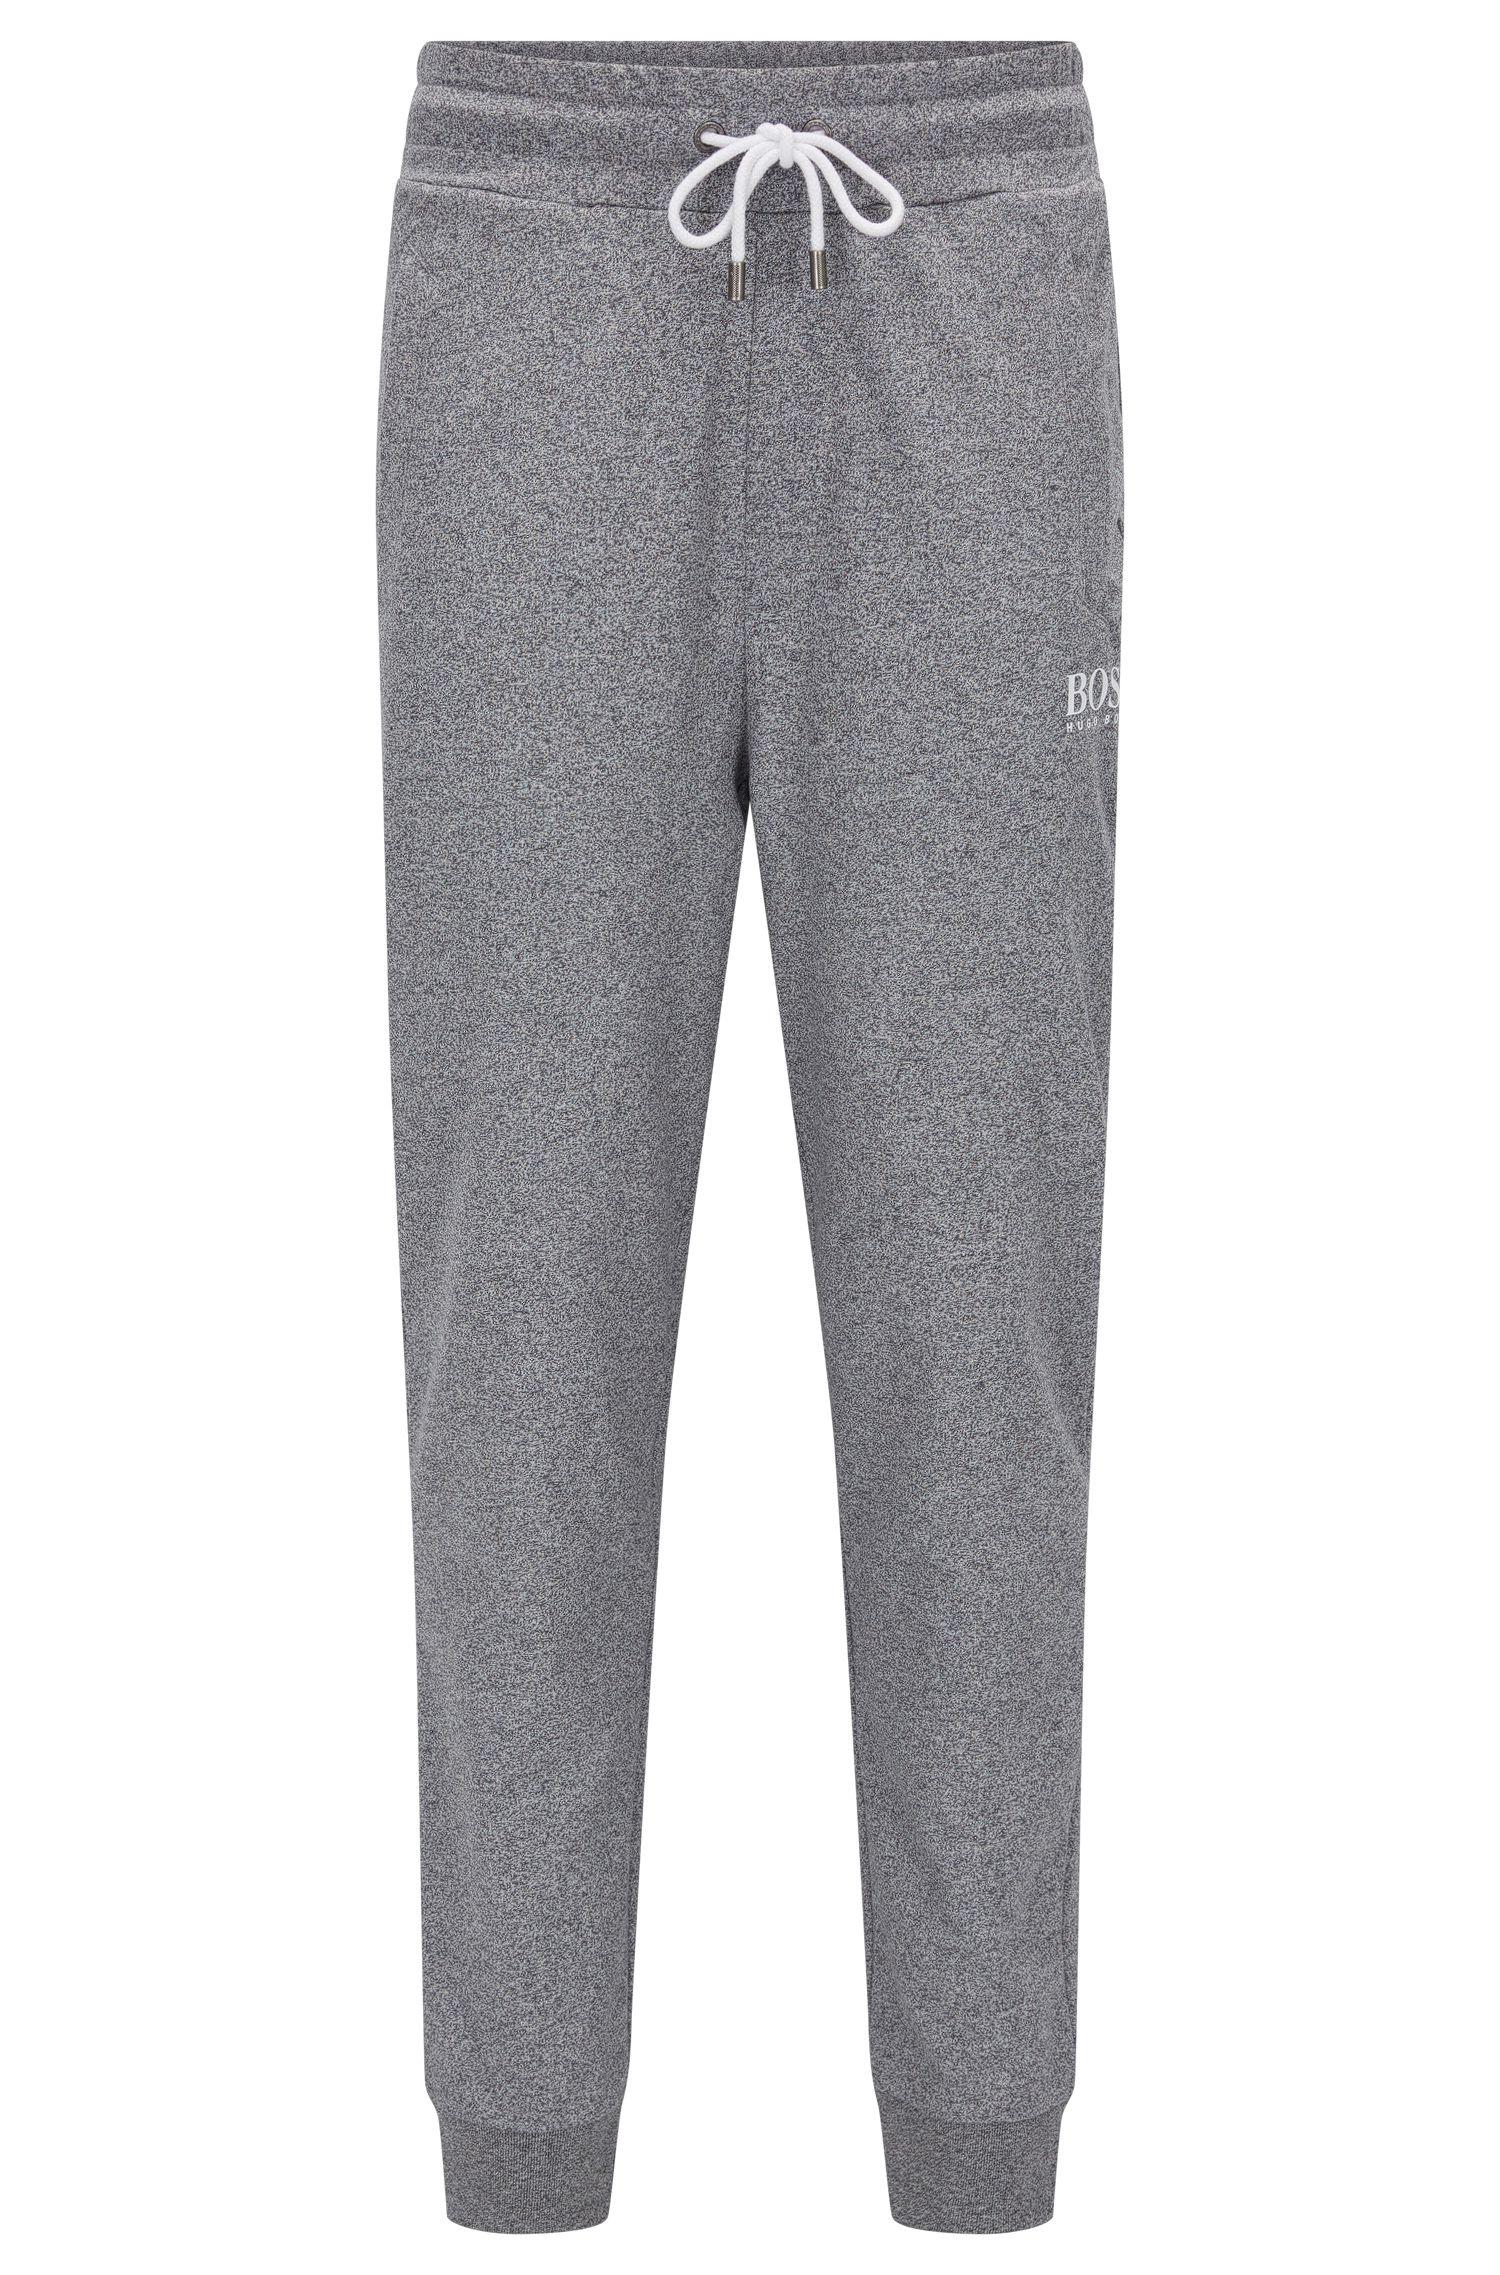 Cuffed loungewear bottoms in French terry